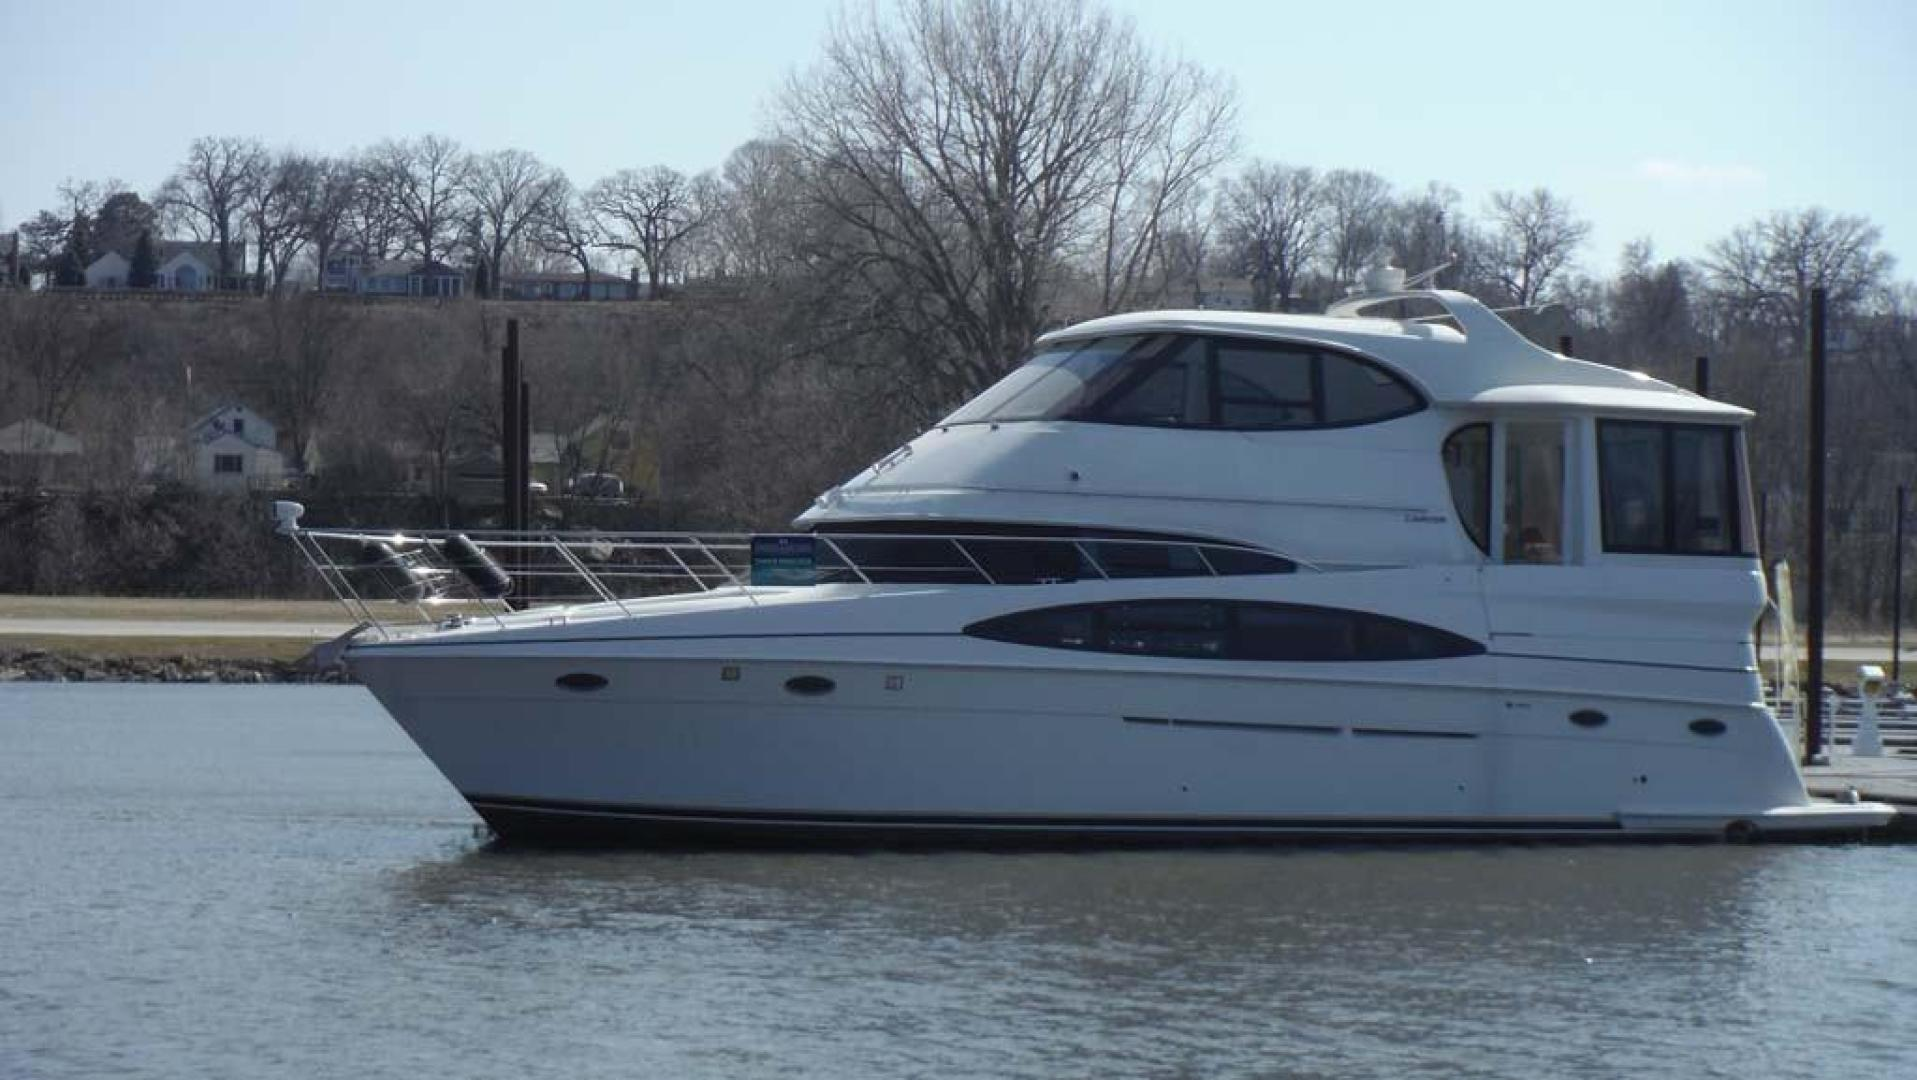 Carver-506 Aft Cabin Motor Yacht 2000-Country Boy Red Wing-Minnesota-United States-Profile-919364 | Thumbnail